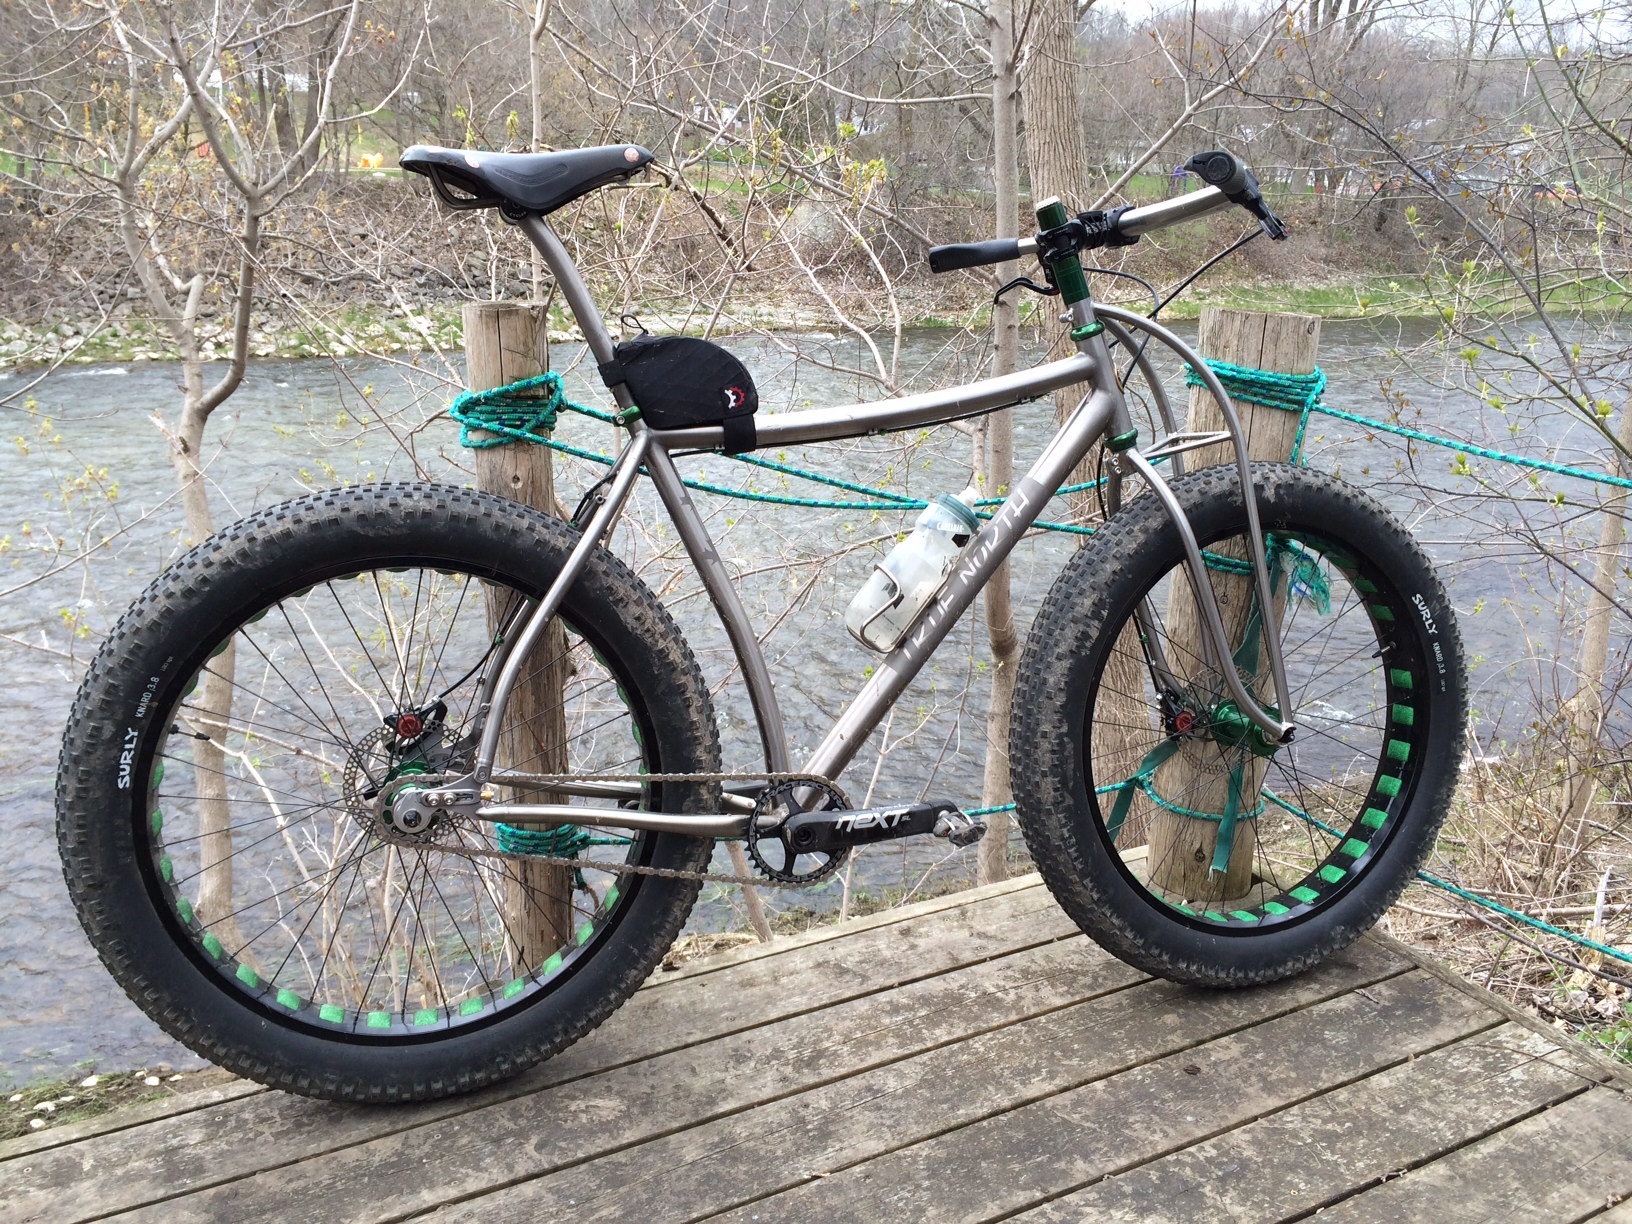 Adam's curvy Fat bike.